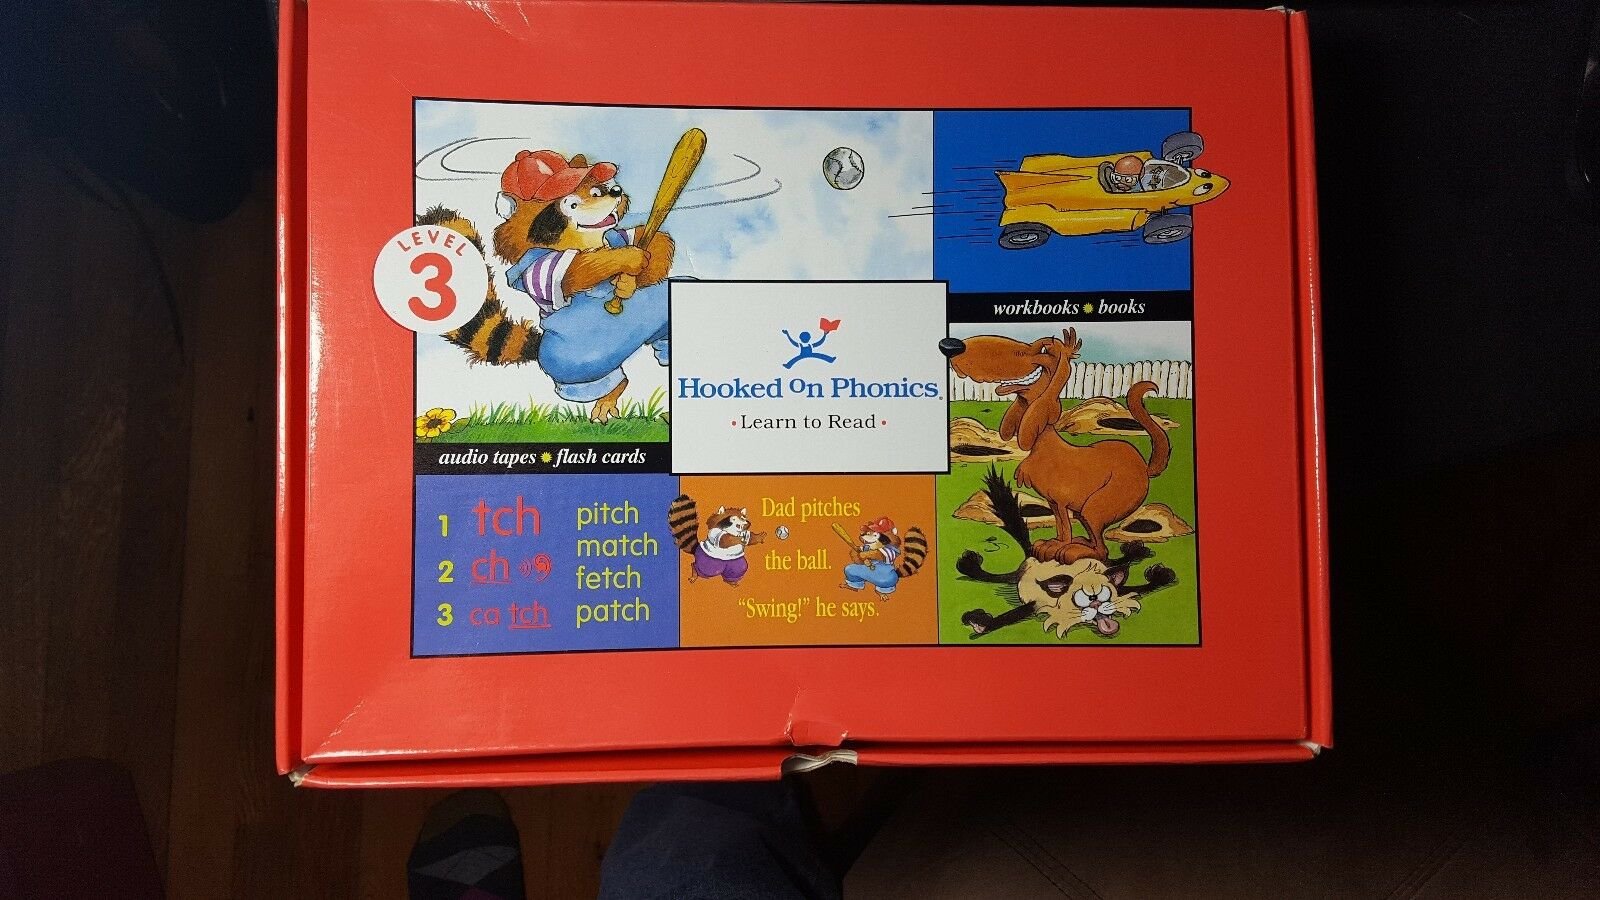 Details about Red Reading & Workbook Set Books Tapes Flash Cards Level 3 New